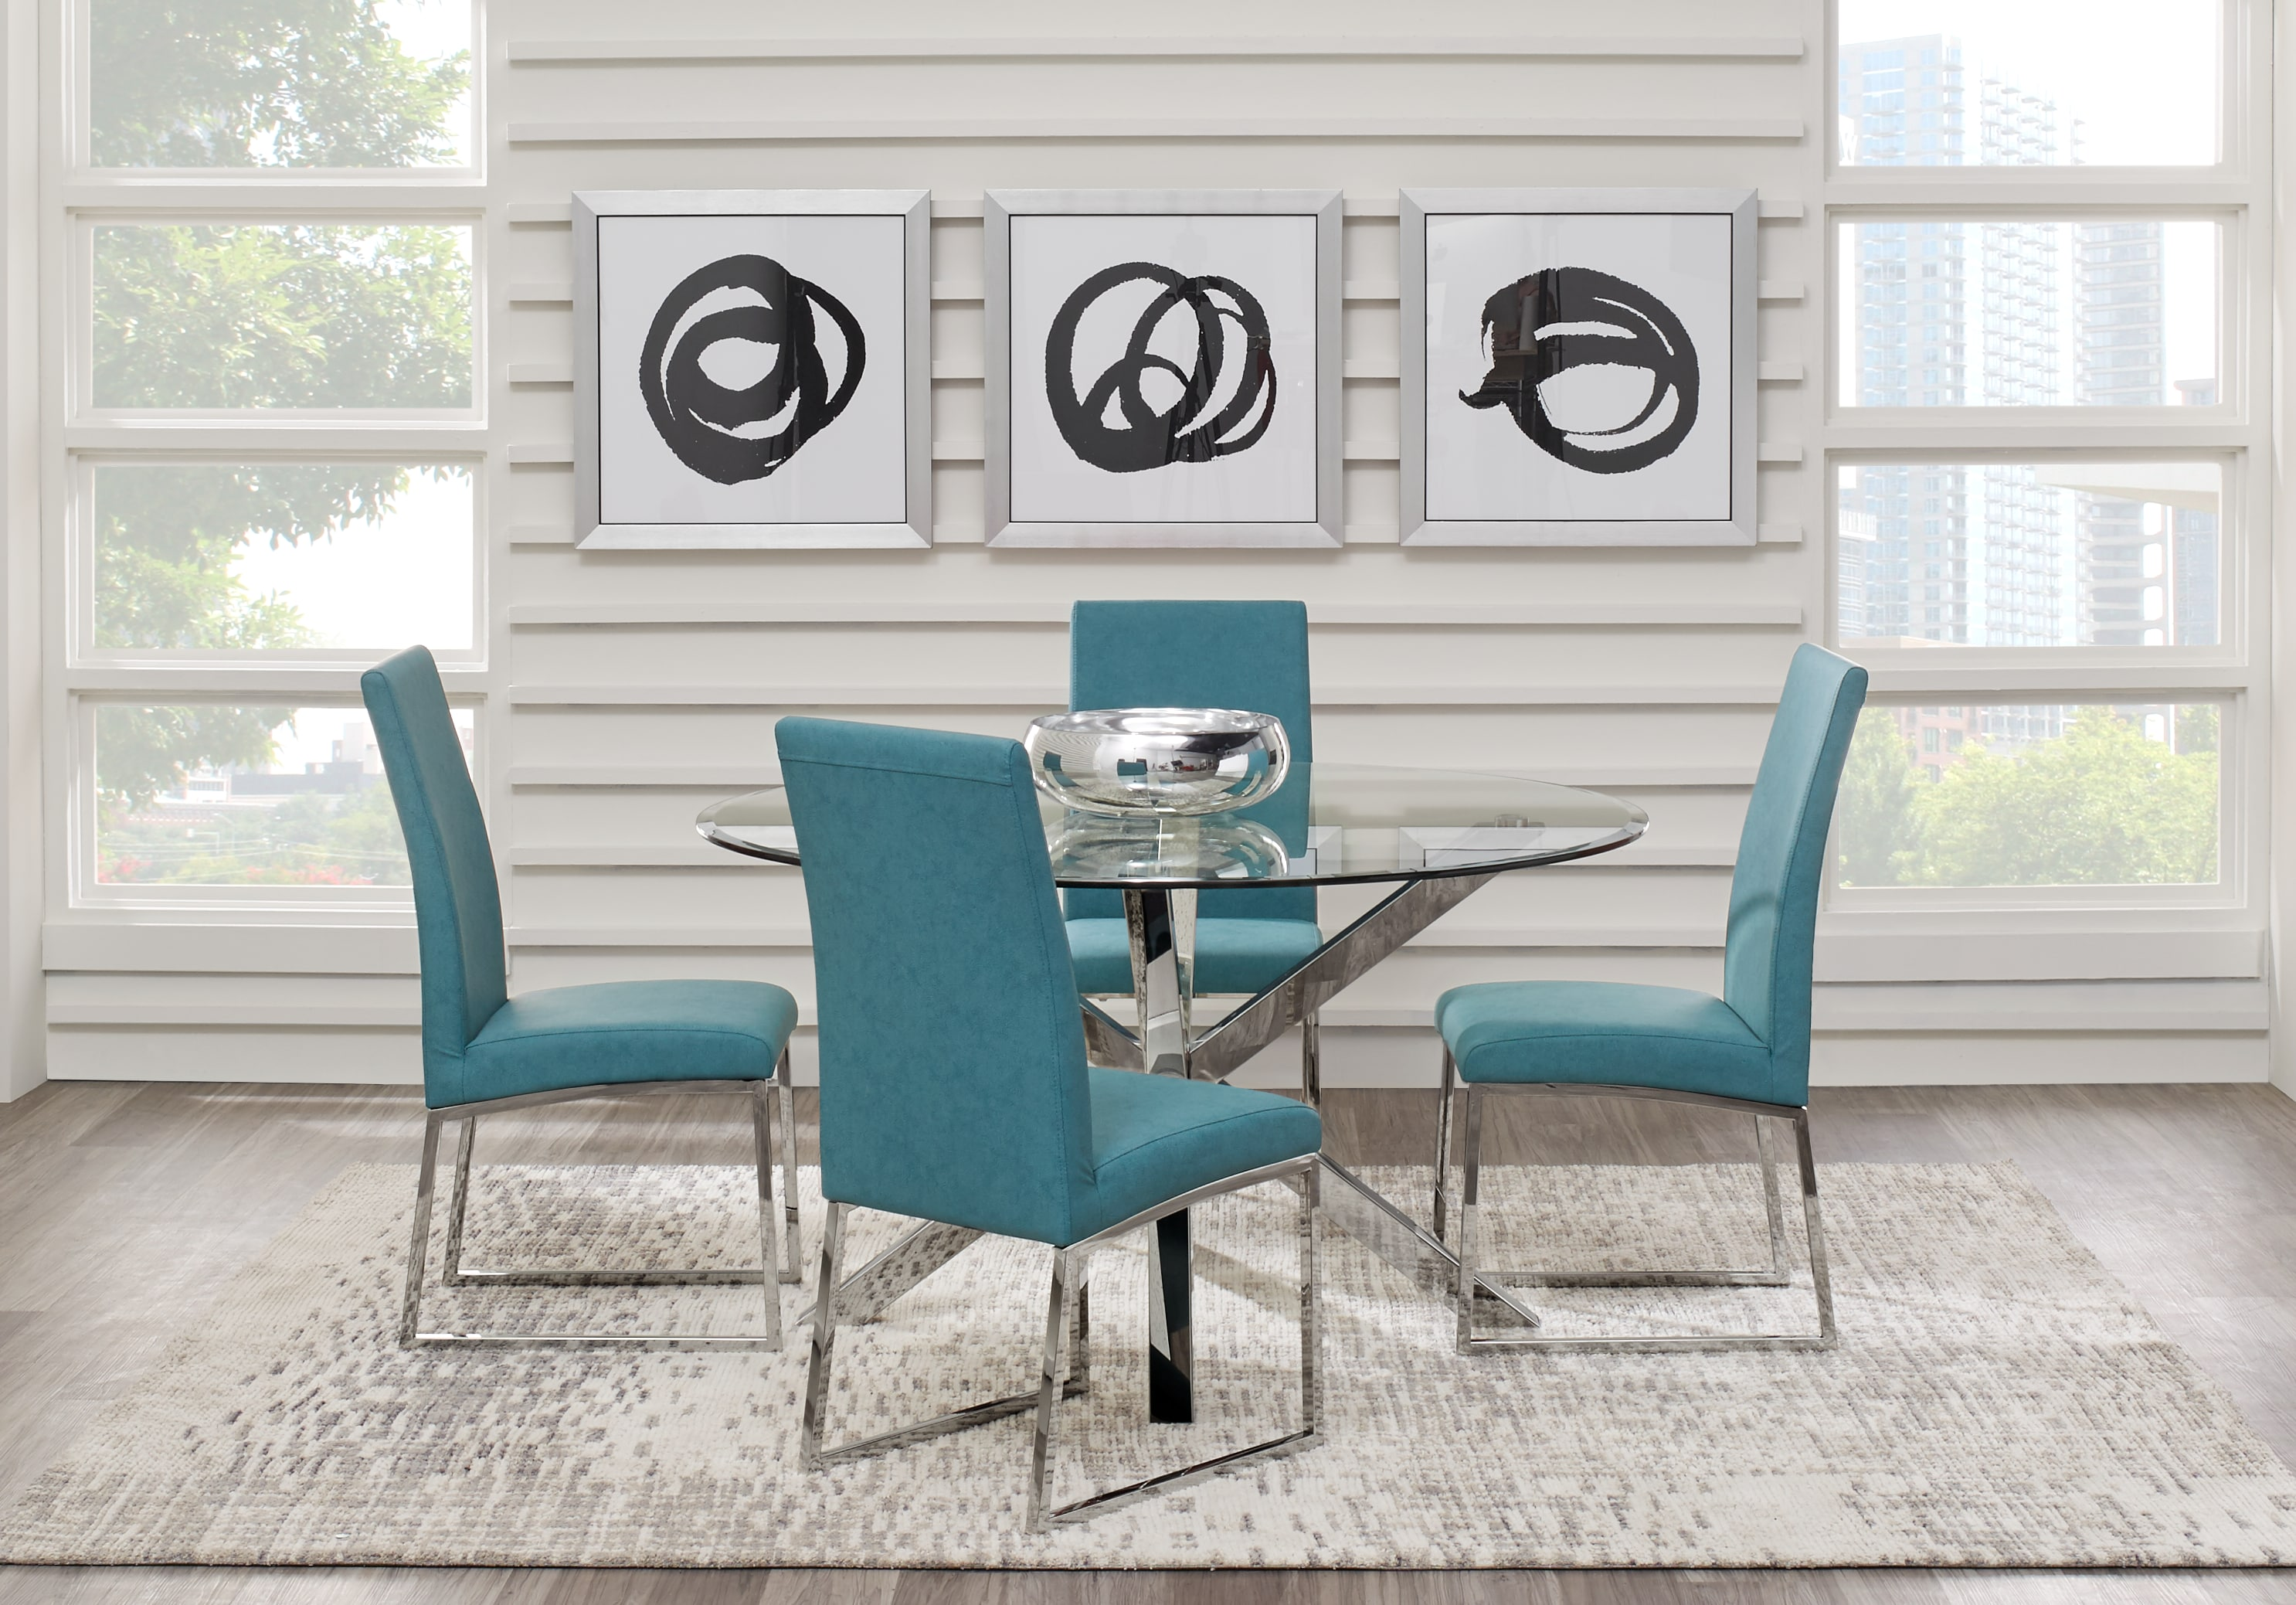 jules ocean dining set room sets metal accent table small leather chairs for spaces modern style end tables antique oak wooden garden side west elm pendant light pulaski furniture